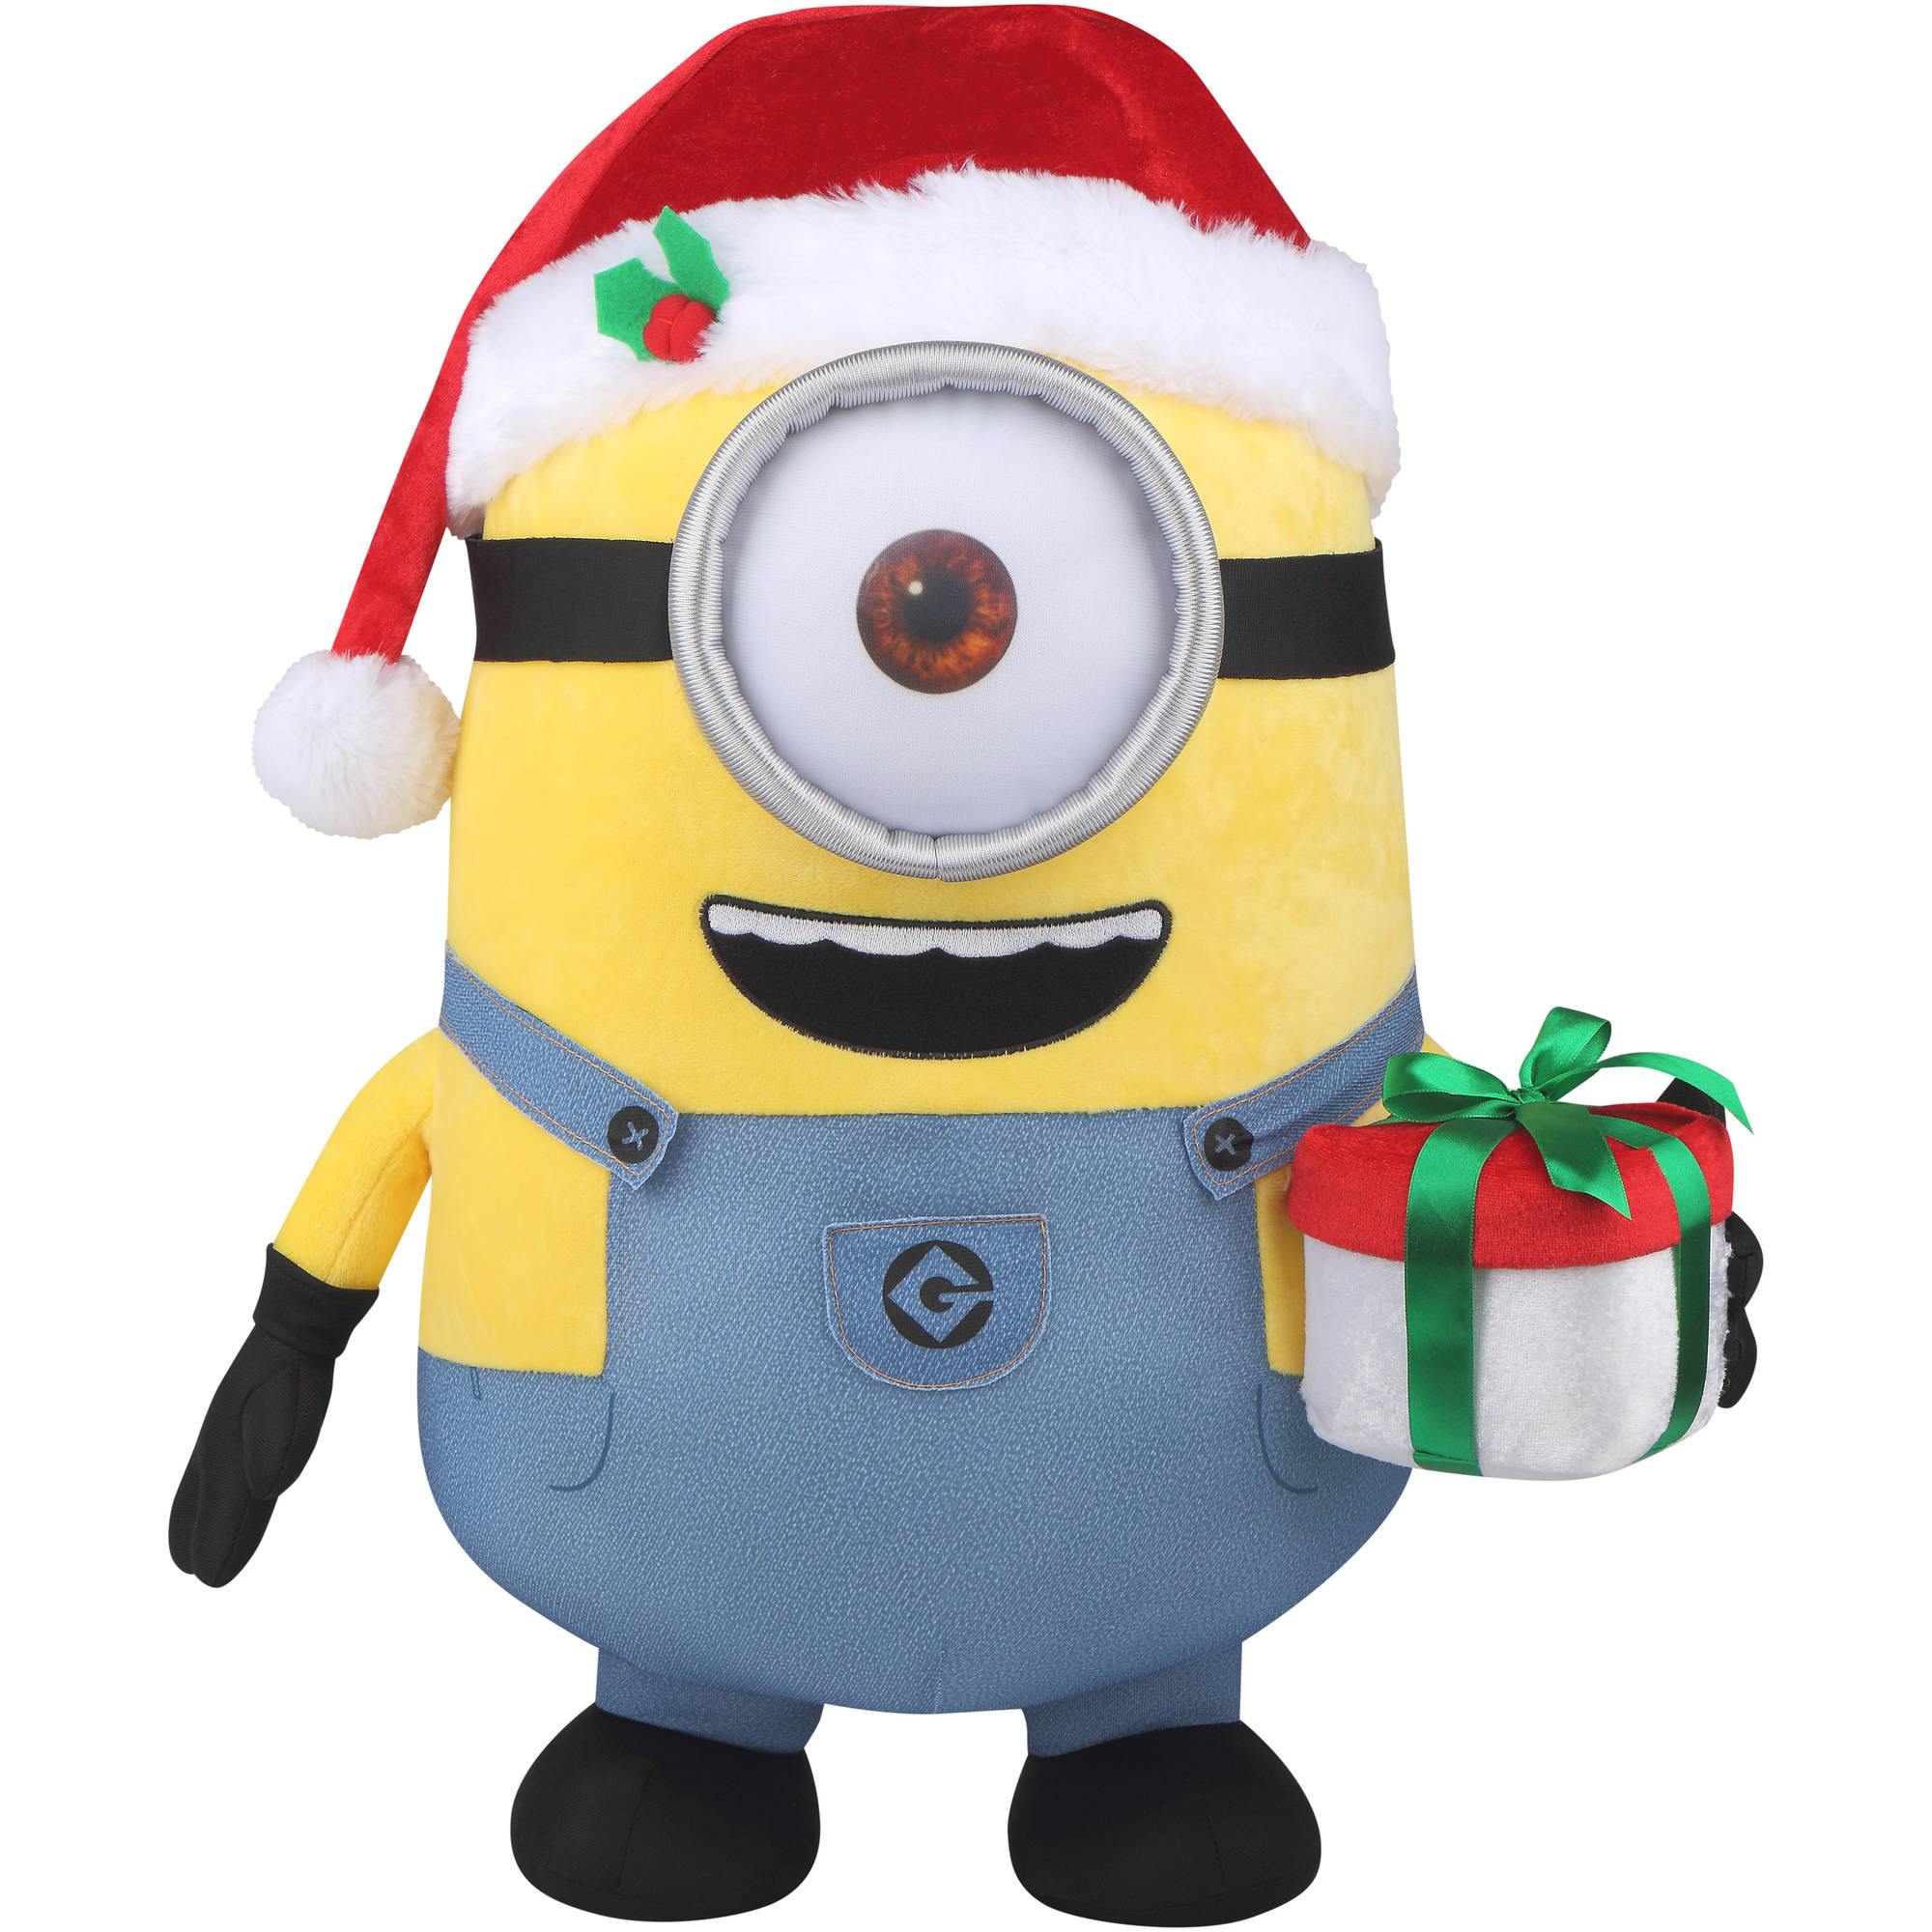 Minions Christmas.Holiday Time Universal 13261 21 Christmas Minion Stuart Plush Greeter